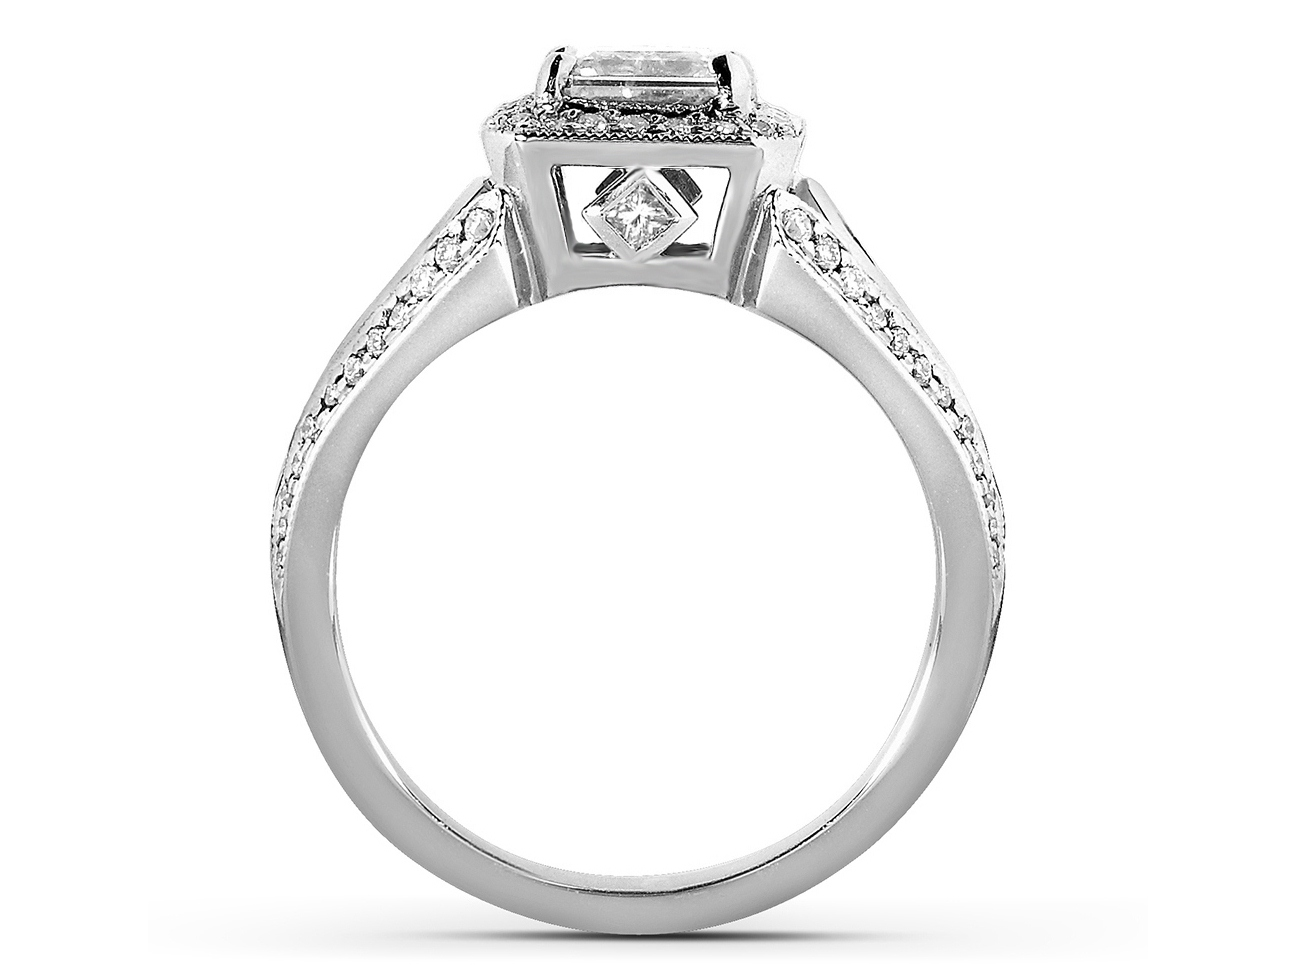 Radiant Diamond Halo Engagement Ring with Kite Shaped Accents in 14k White Gold